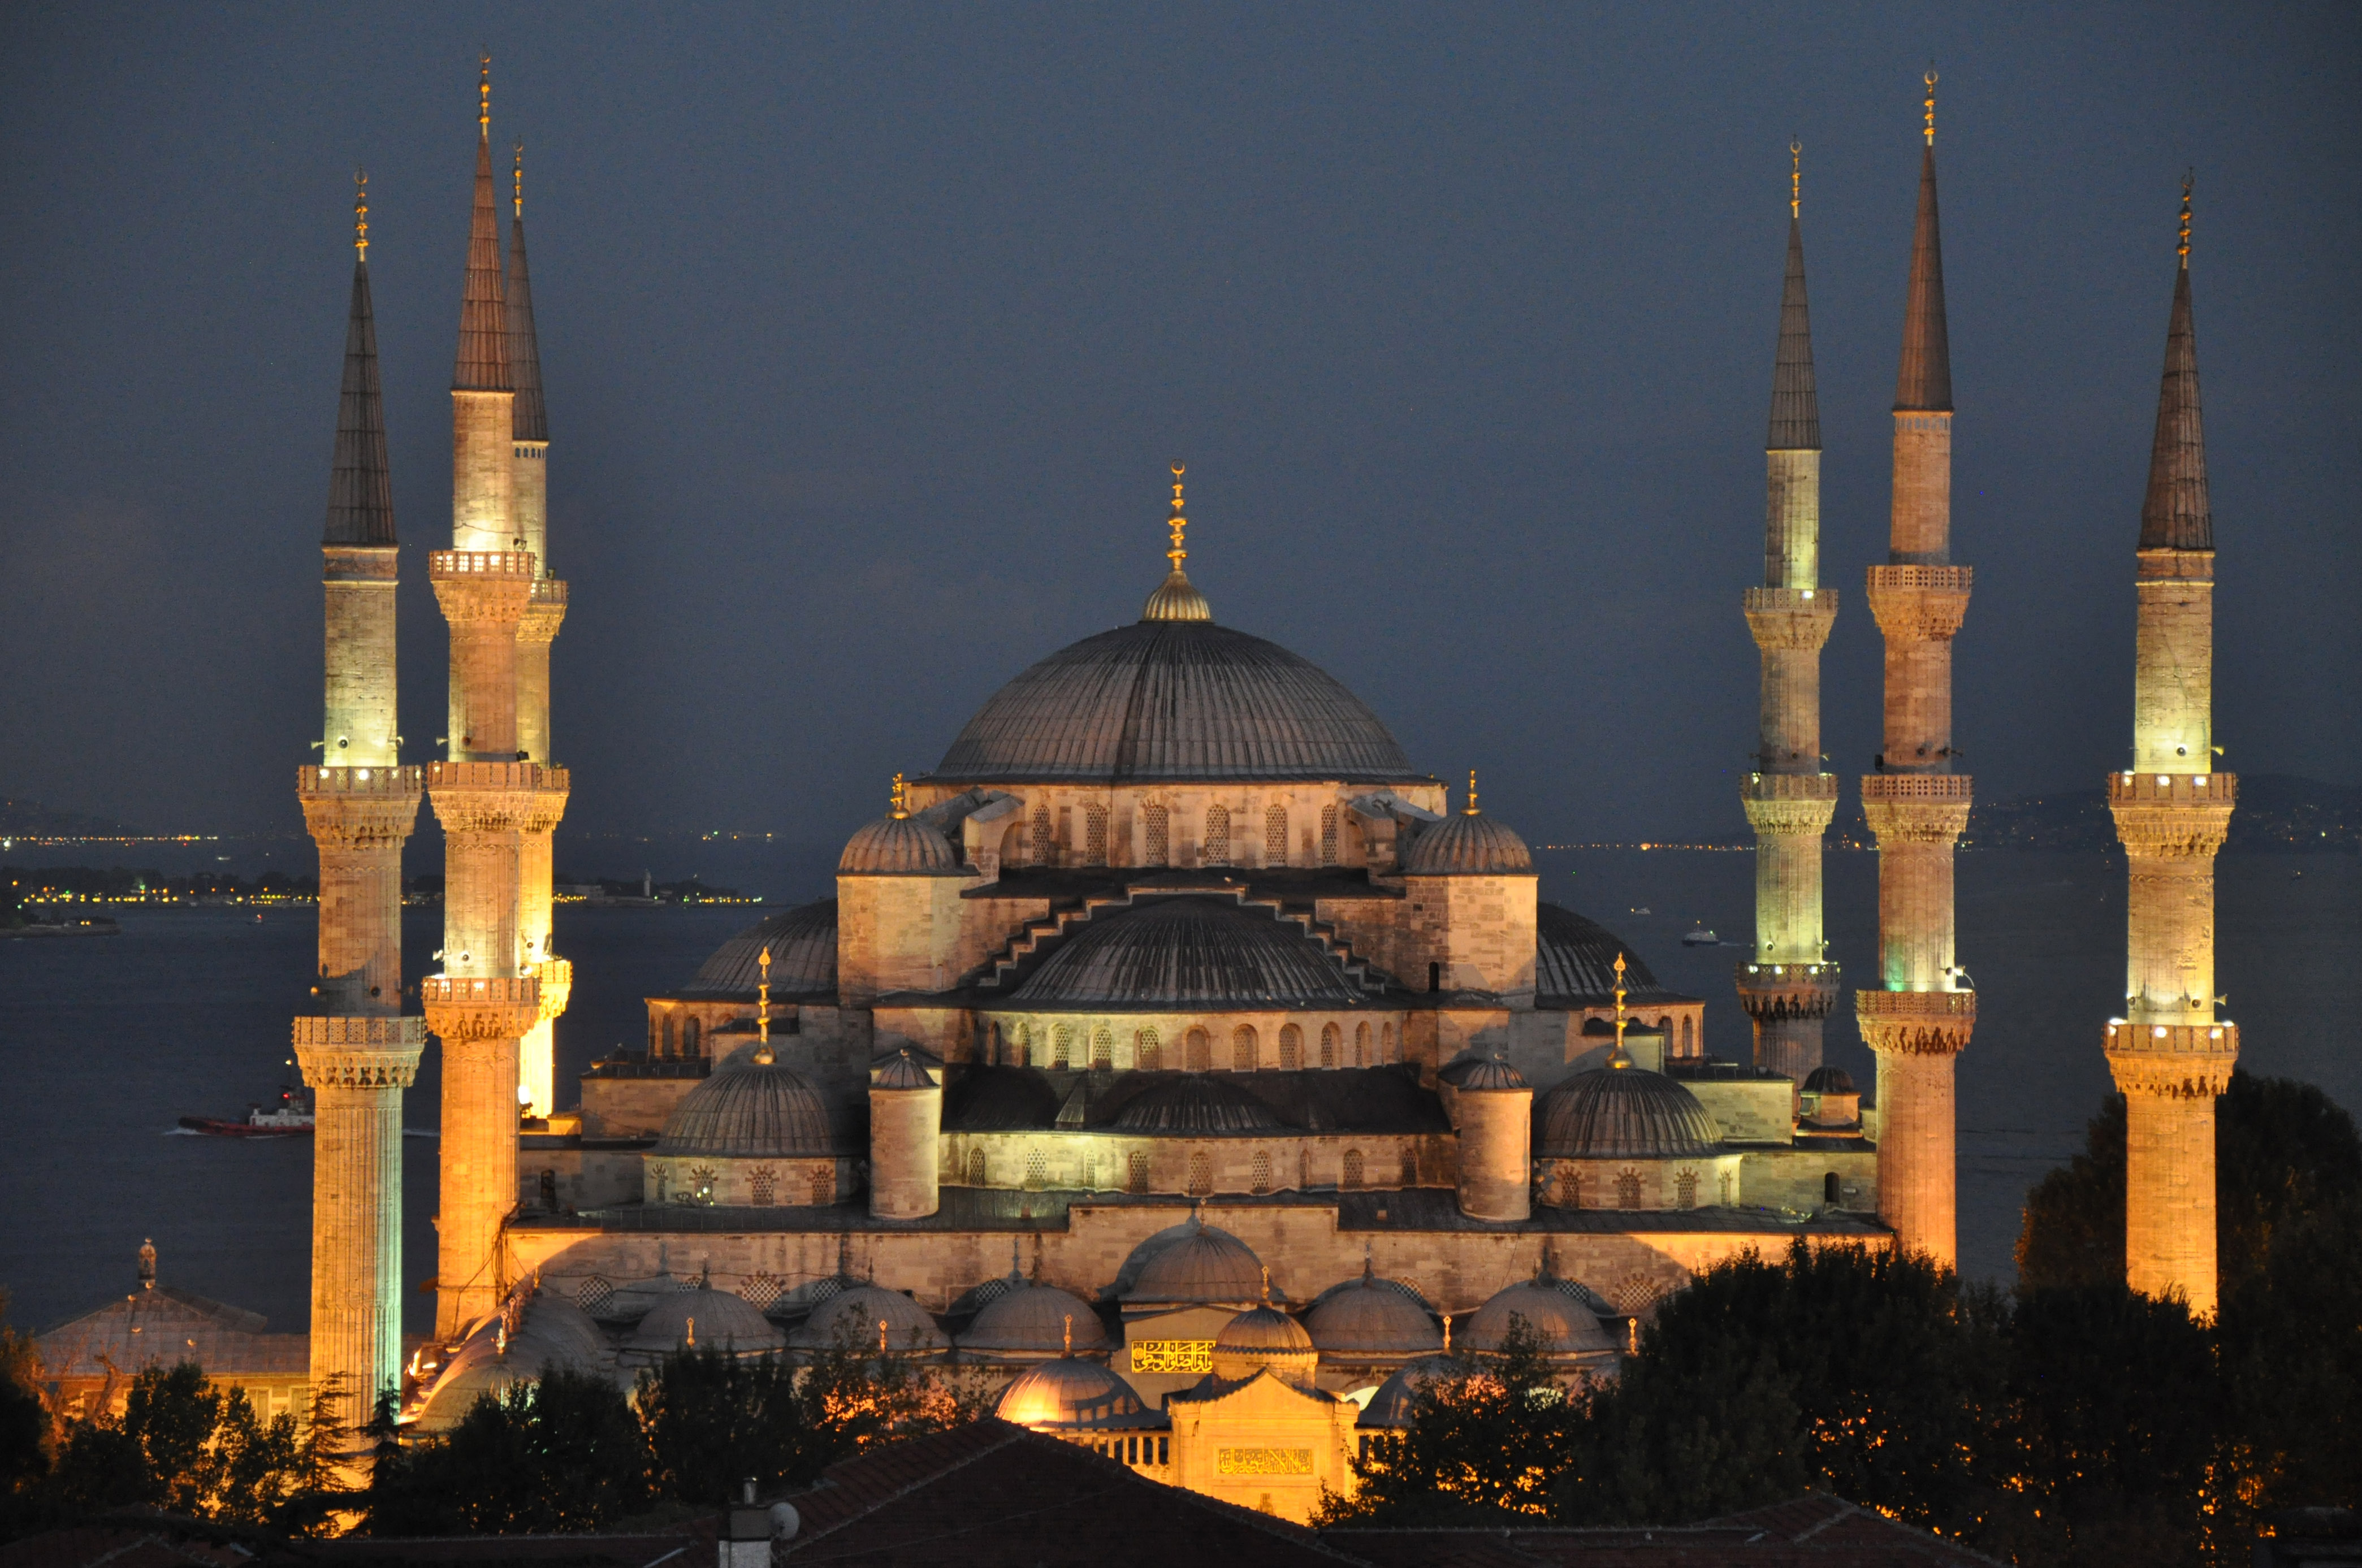 The_Sultan_Ahmed_Mosque_(Blue_Mosque)_(8290130241).jpg